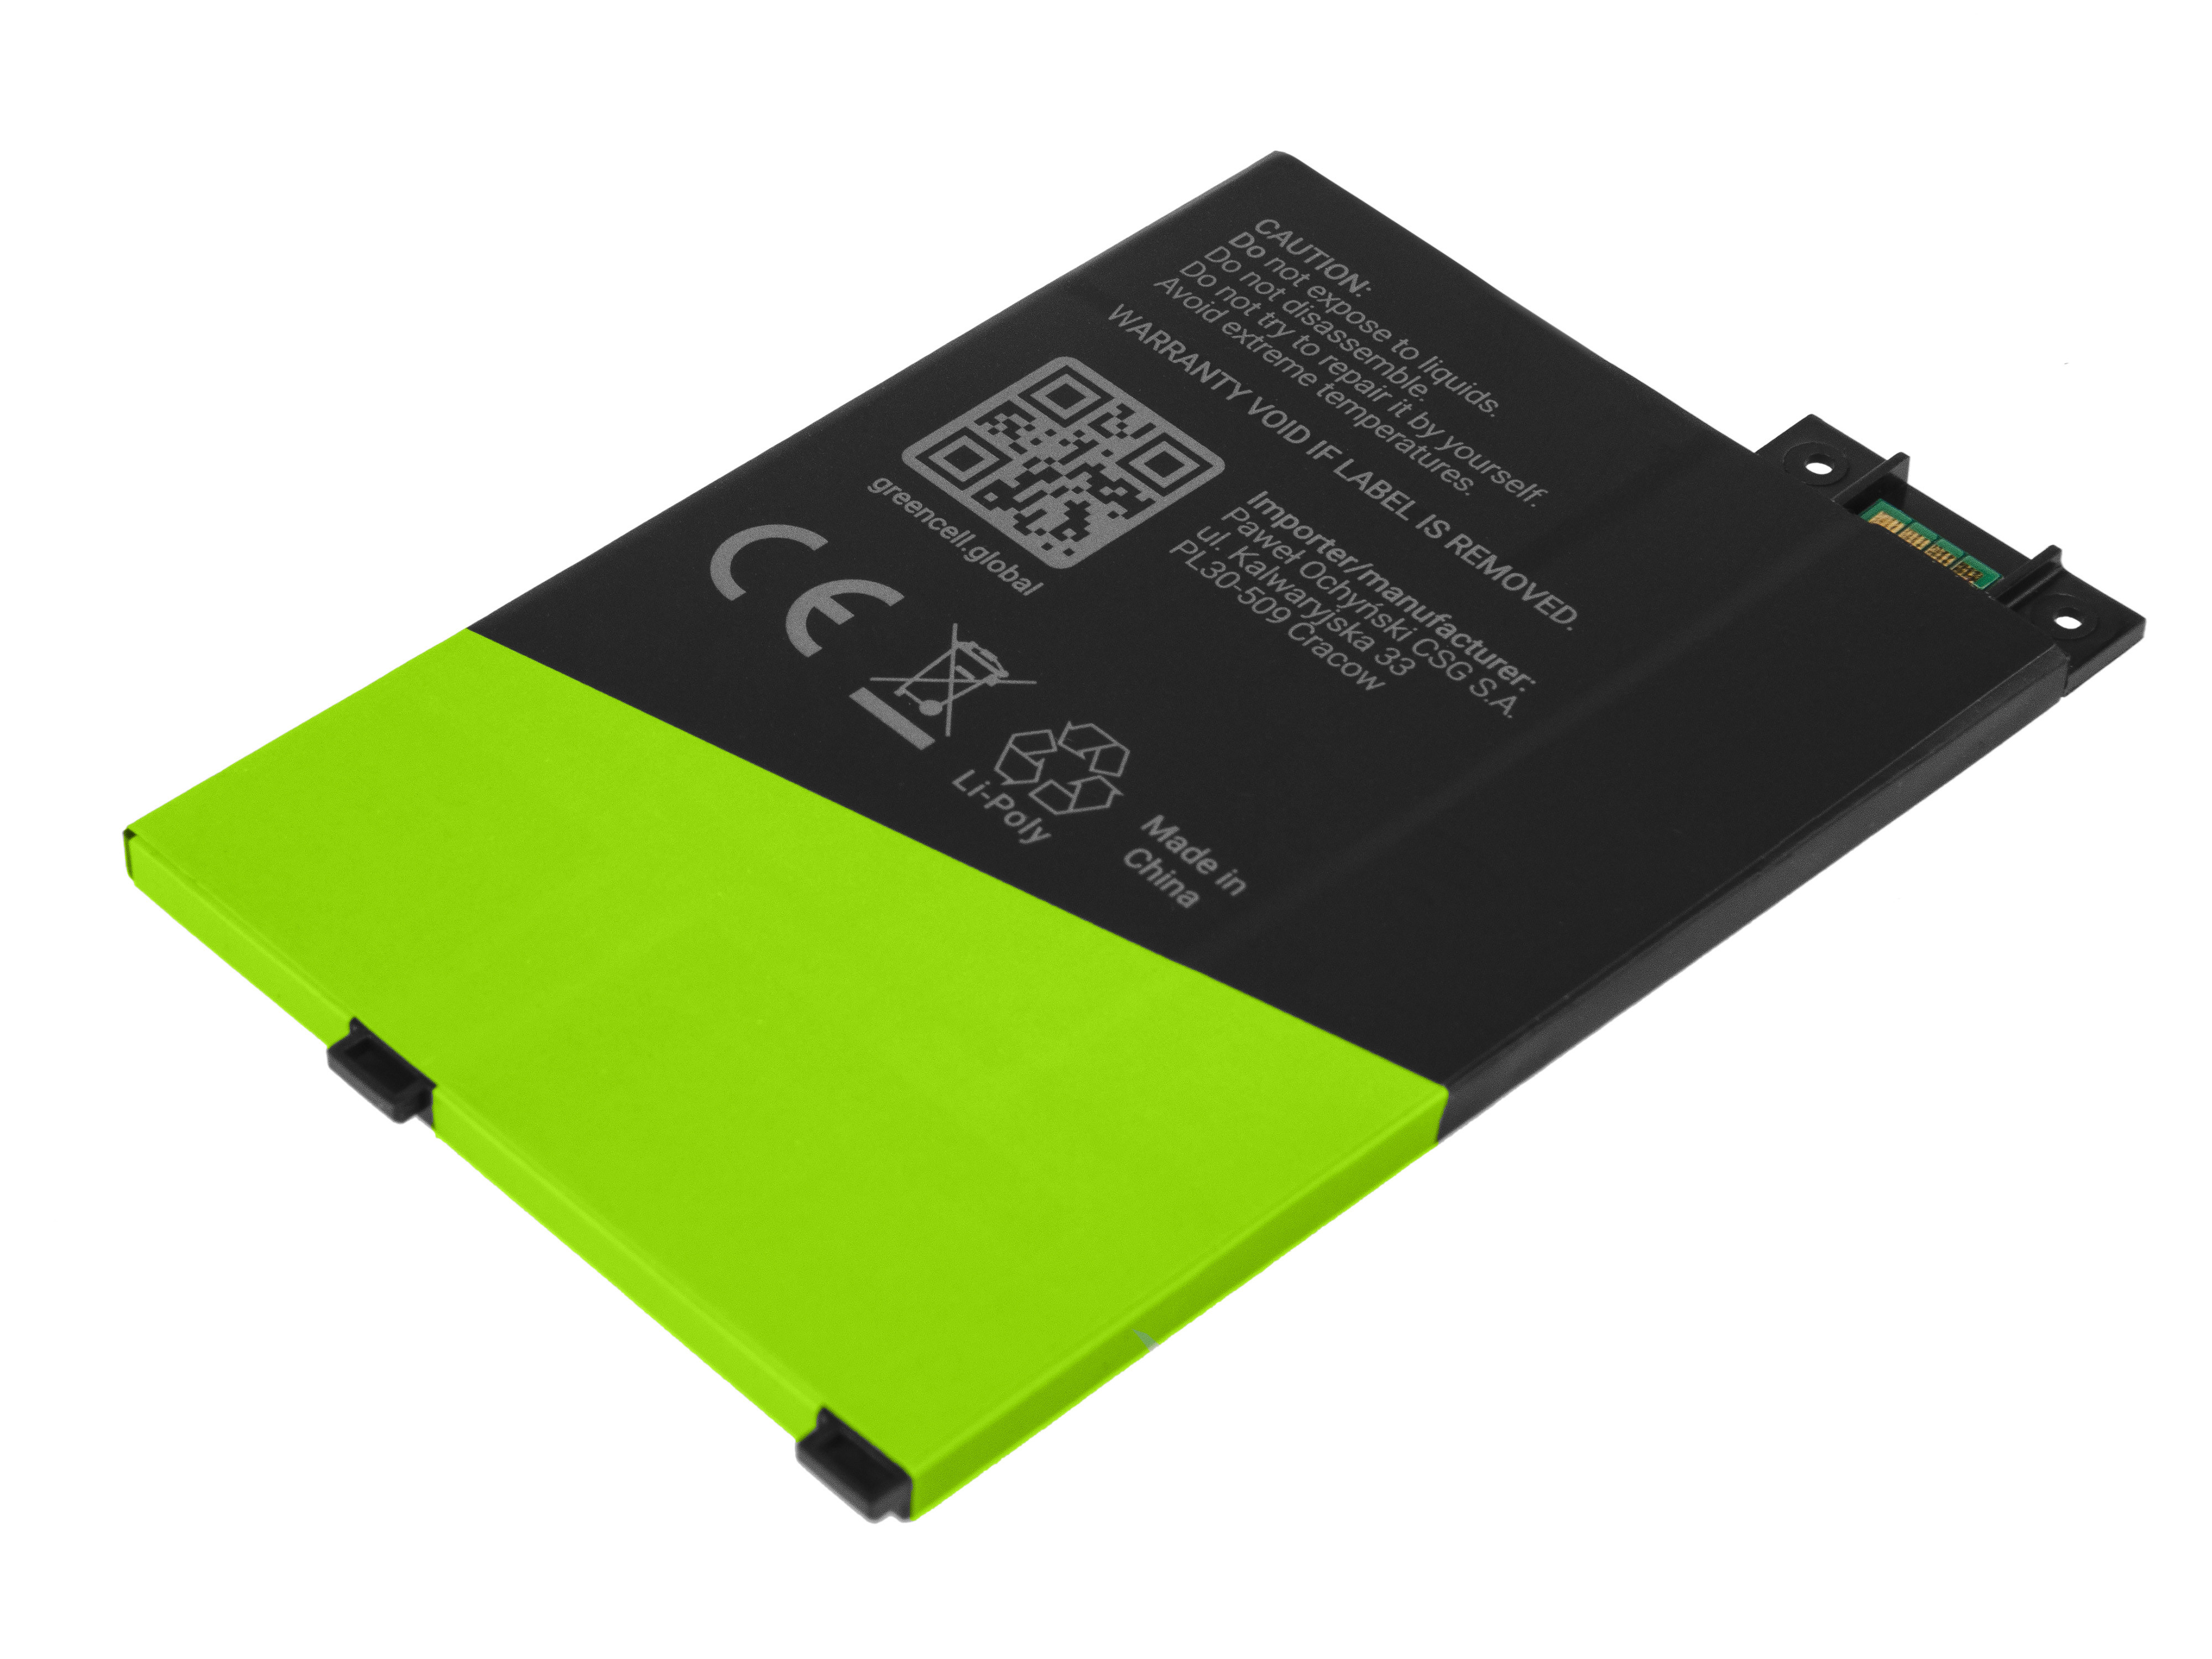 Green Cell 170-1032-01 Battery for Amazon Kindle 3 Keyboard 2010 D00901